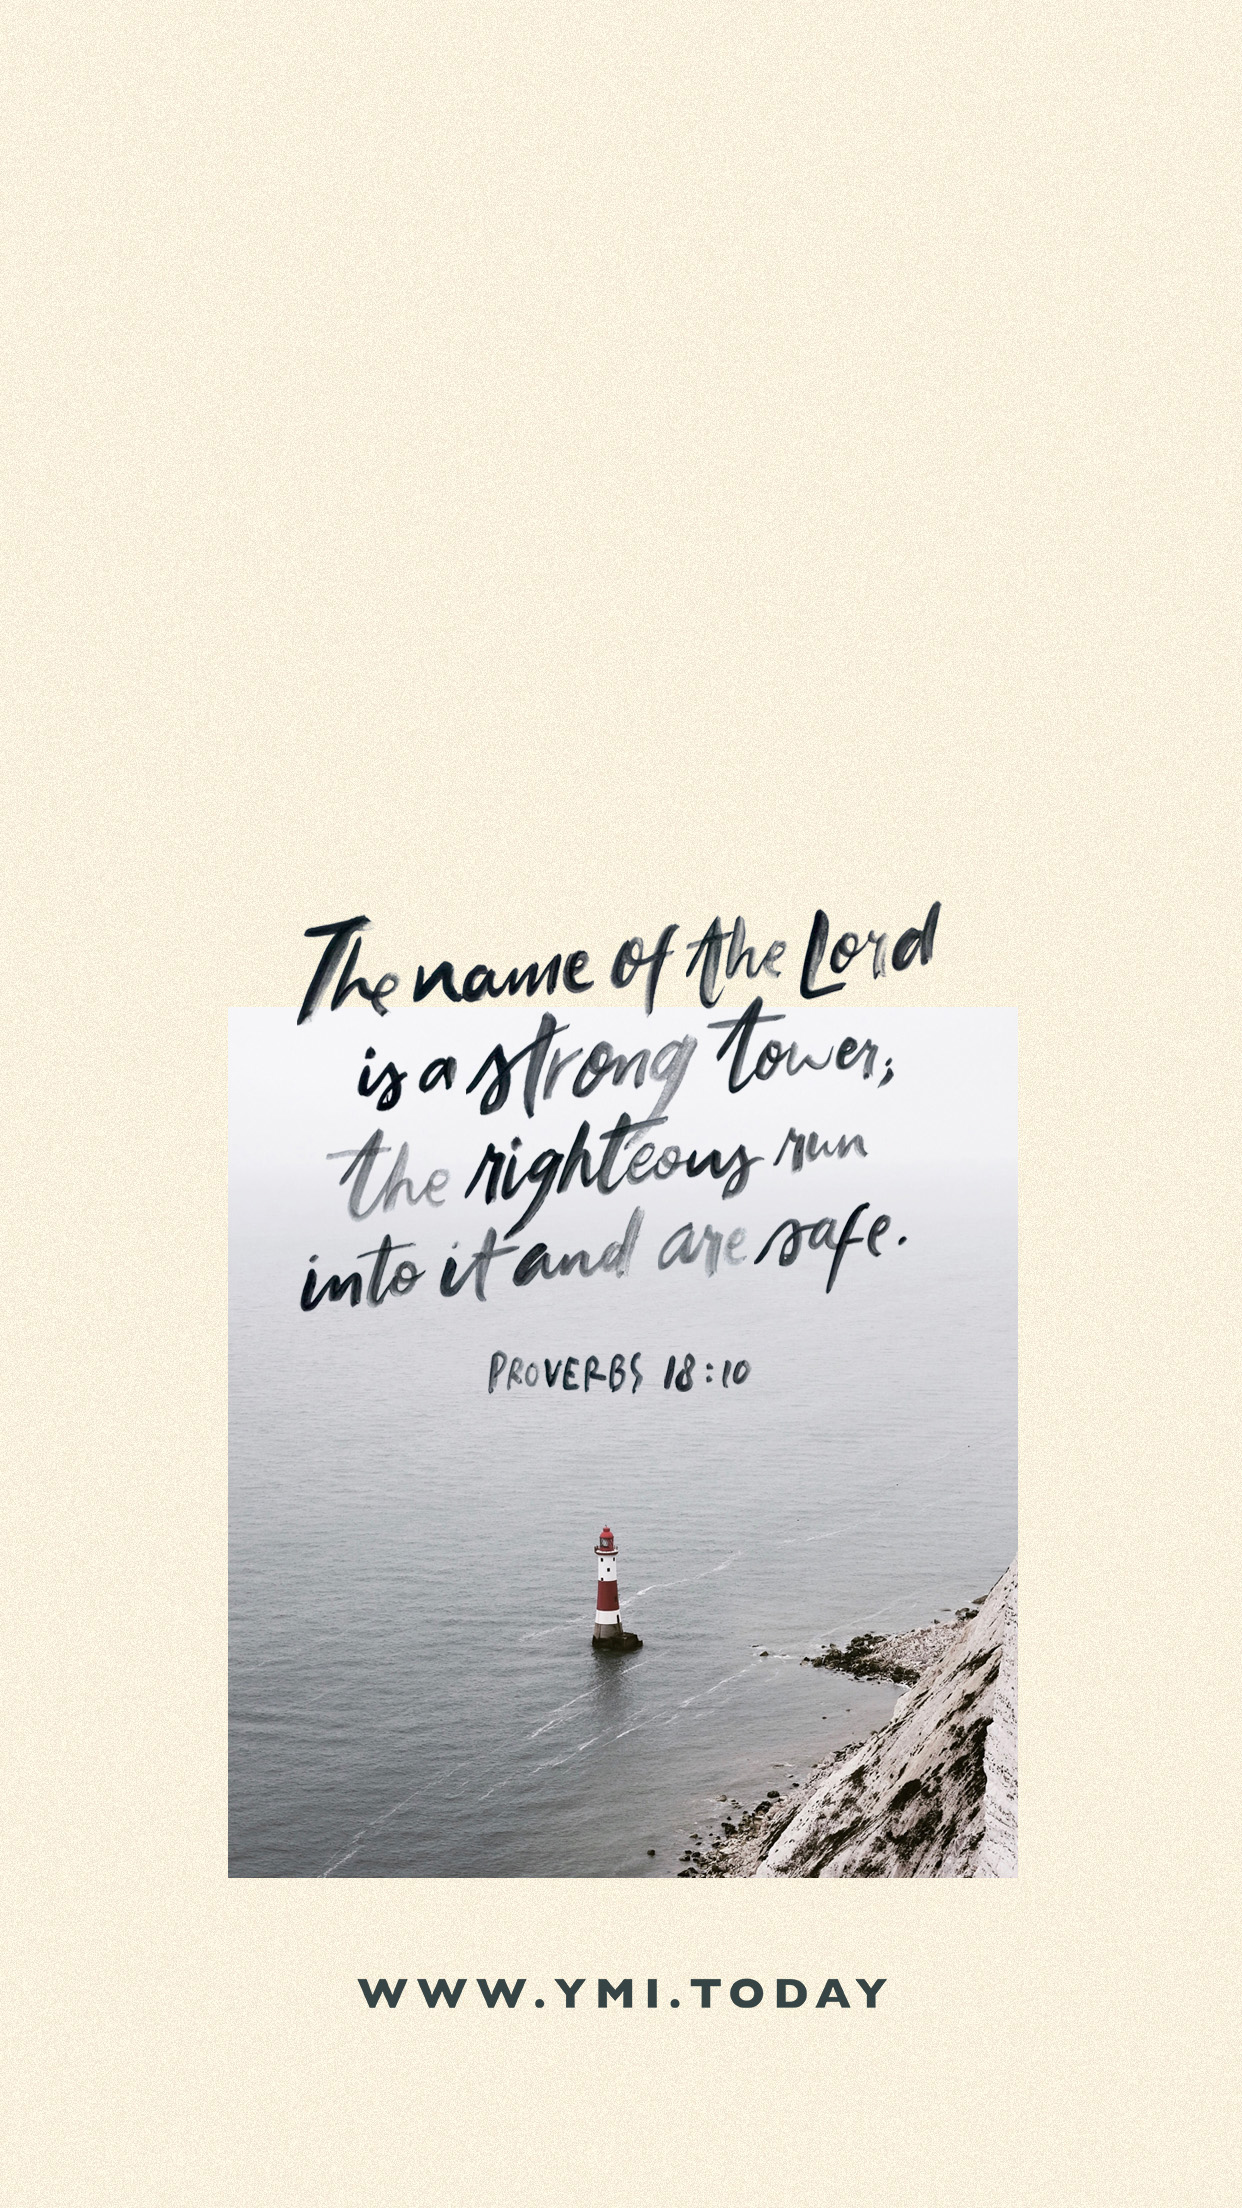 YMI October 2019 Phone Lockscreen - The name of the Lord is a strong tower, the righteous run into it and are safe. - Proverbs 18:10